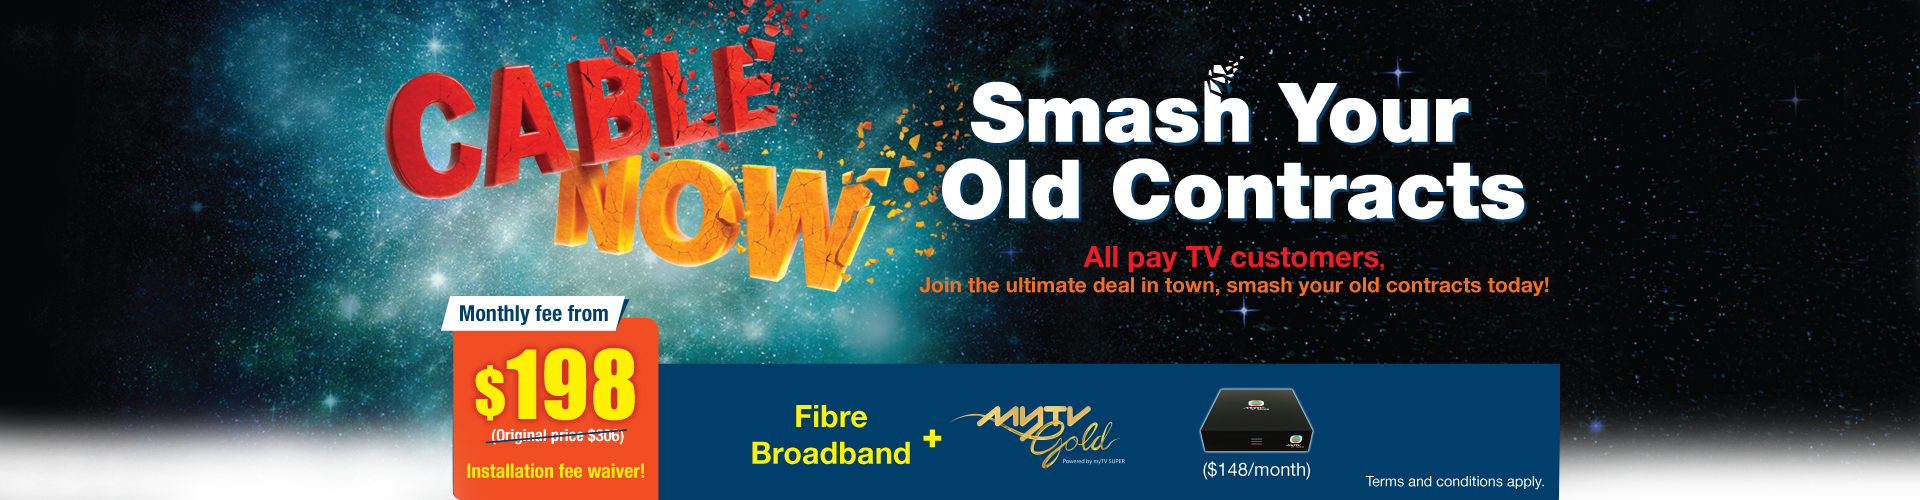 Exclusive offer for customers who switch over from i-Cable and Now TV